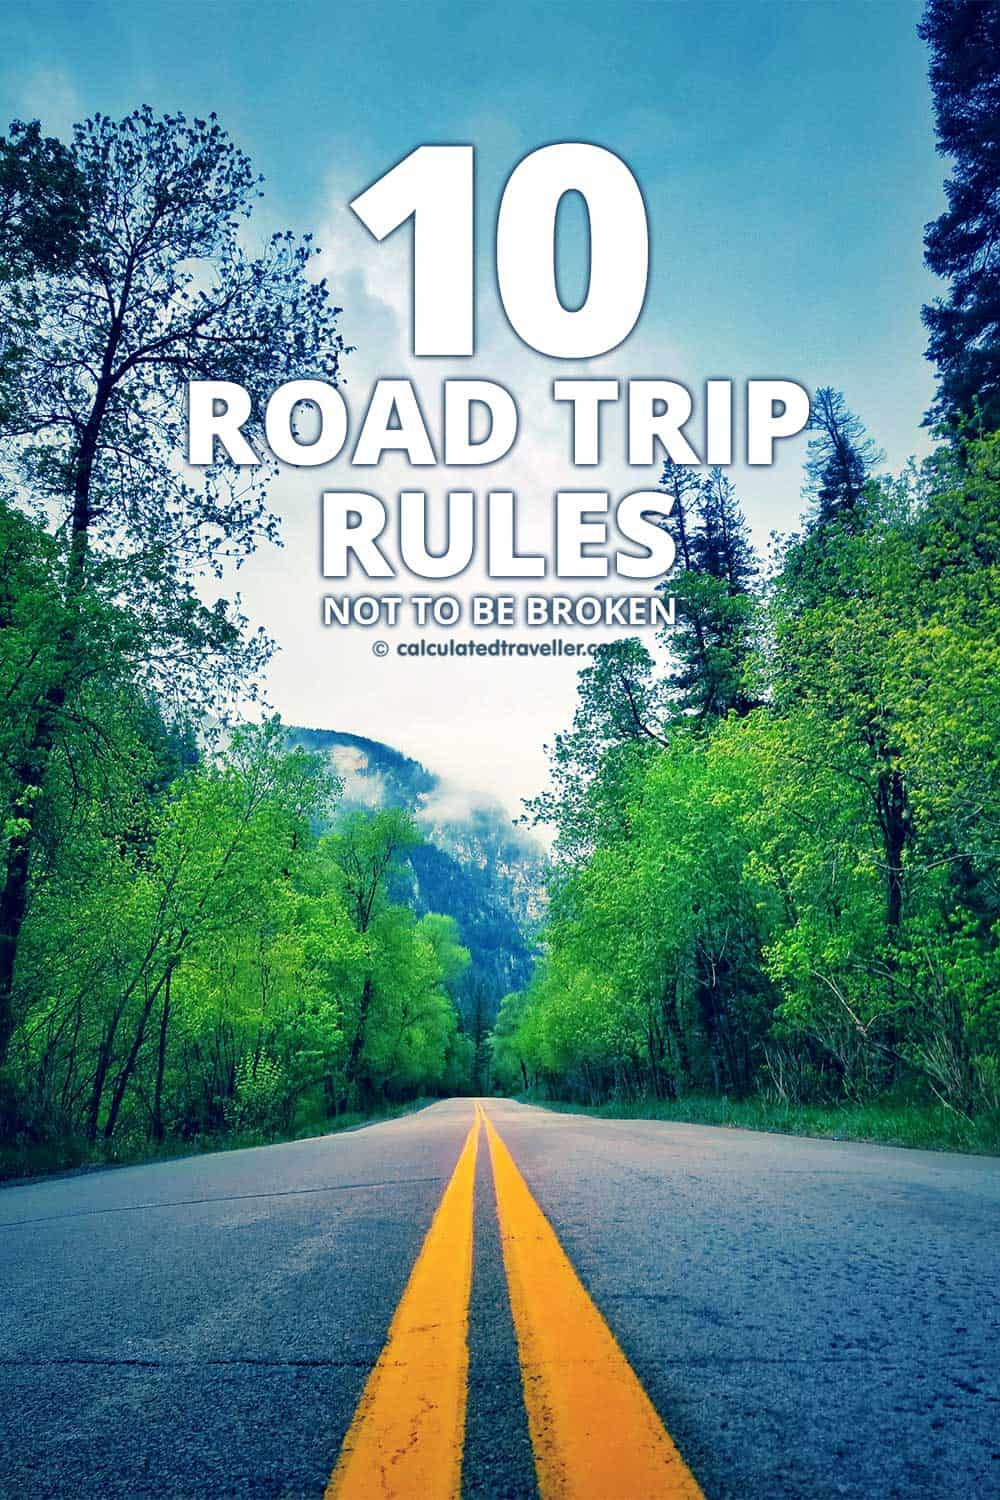 10 Road Trip Rules definitely not to be broken the next time you go on a driving adventure in your car! #travel #trip #tip #car #road #driving